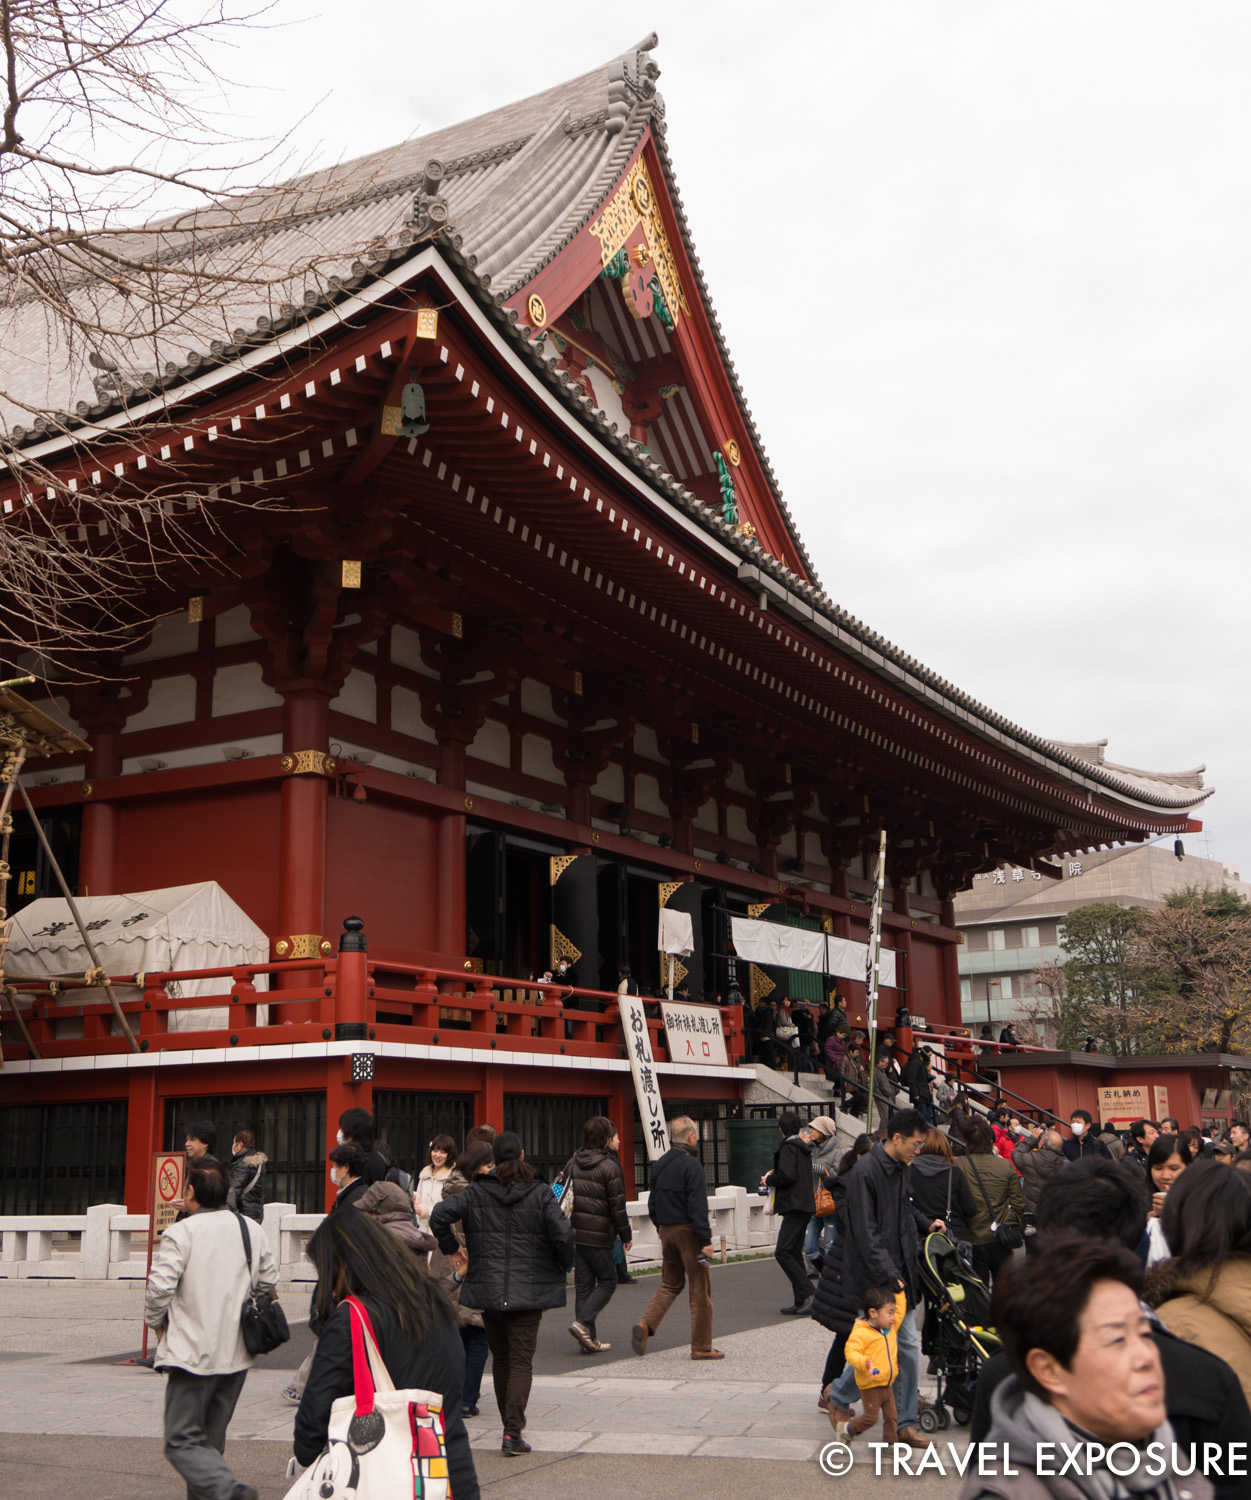 Side view of the Sensoji Temple, a Buddhist temple that honors Kannon, the Buddhist goddess of mercy and happiness.